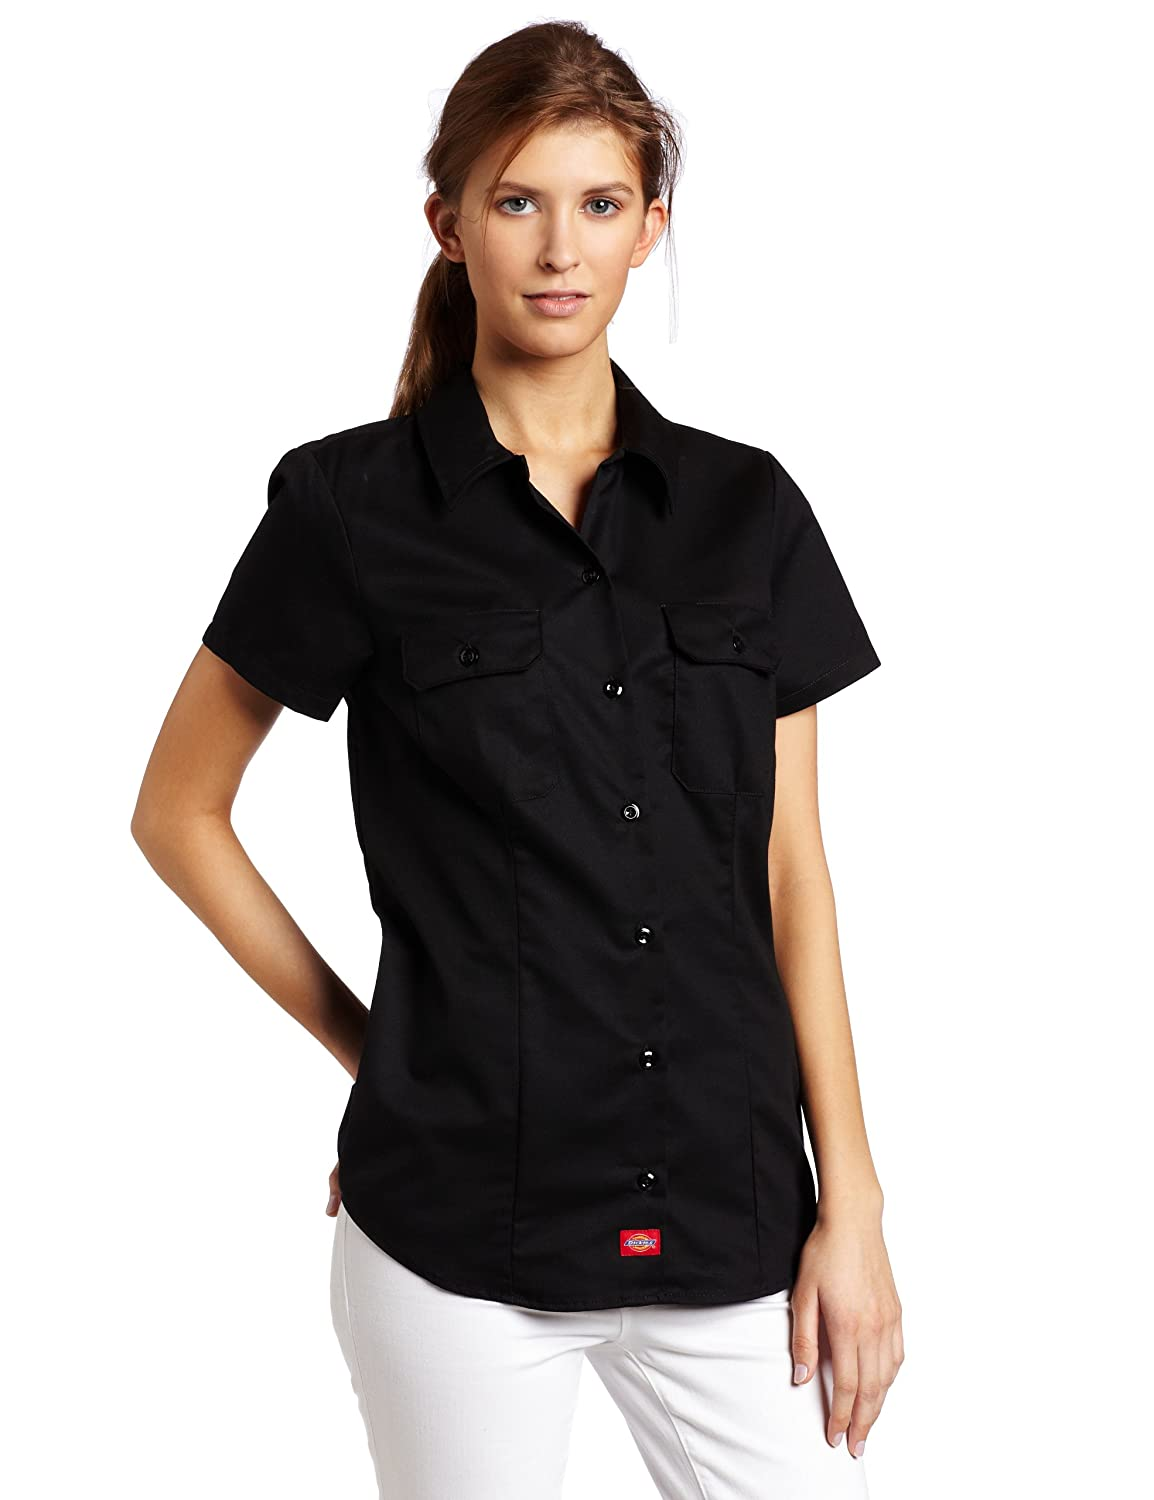 Womens work shirts artee shirt for Women s broadcloth shirts